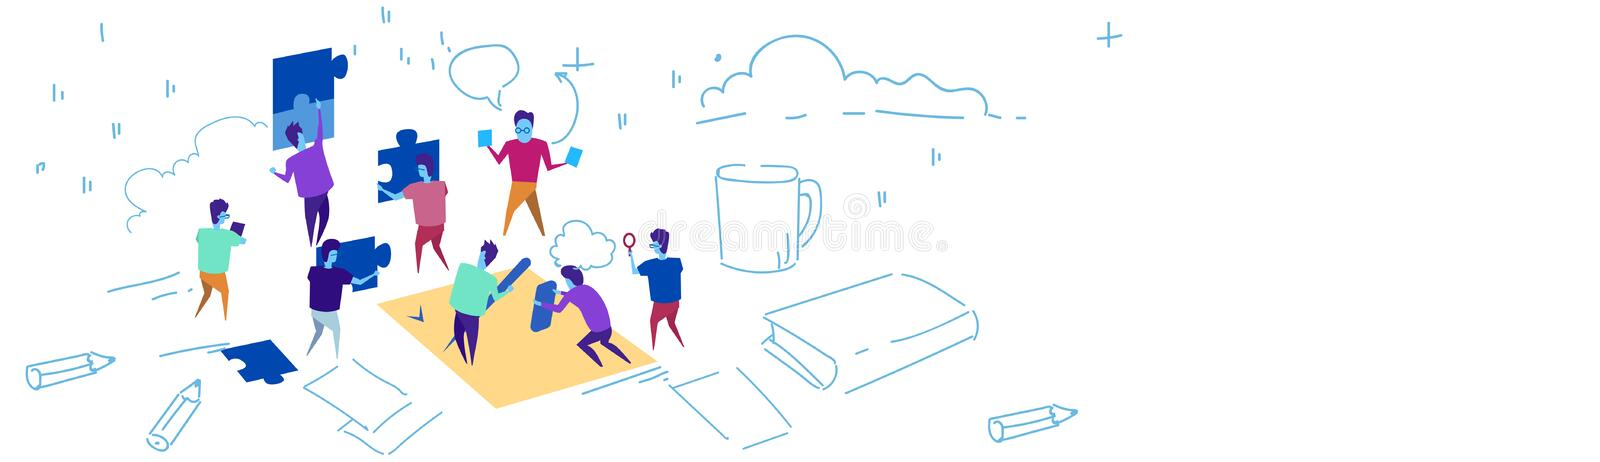 Business people putting puzzle pieces team working jigsaw concept problem solution hardworking process sketch doodle vector illustration